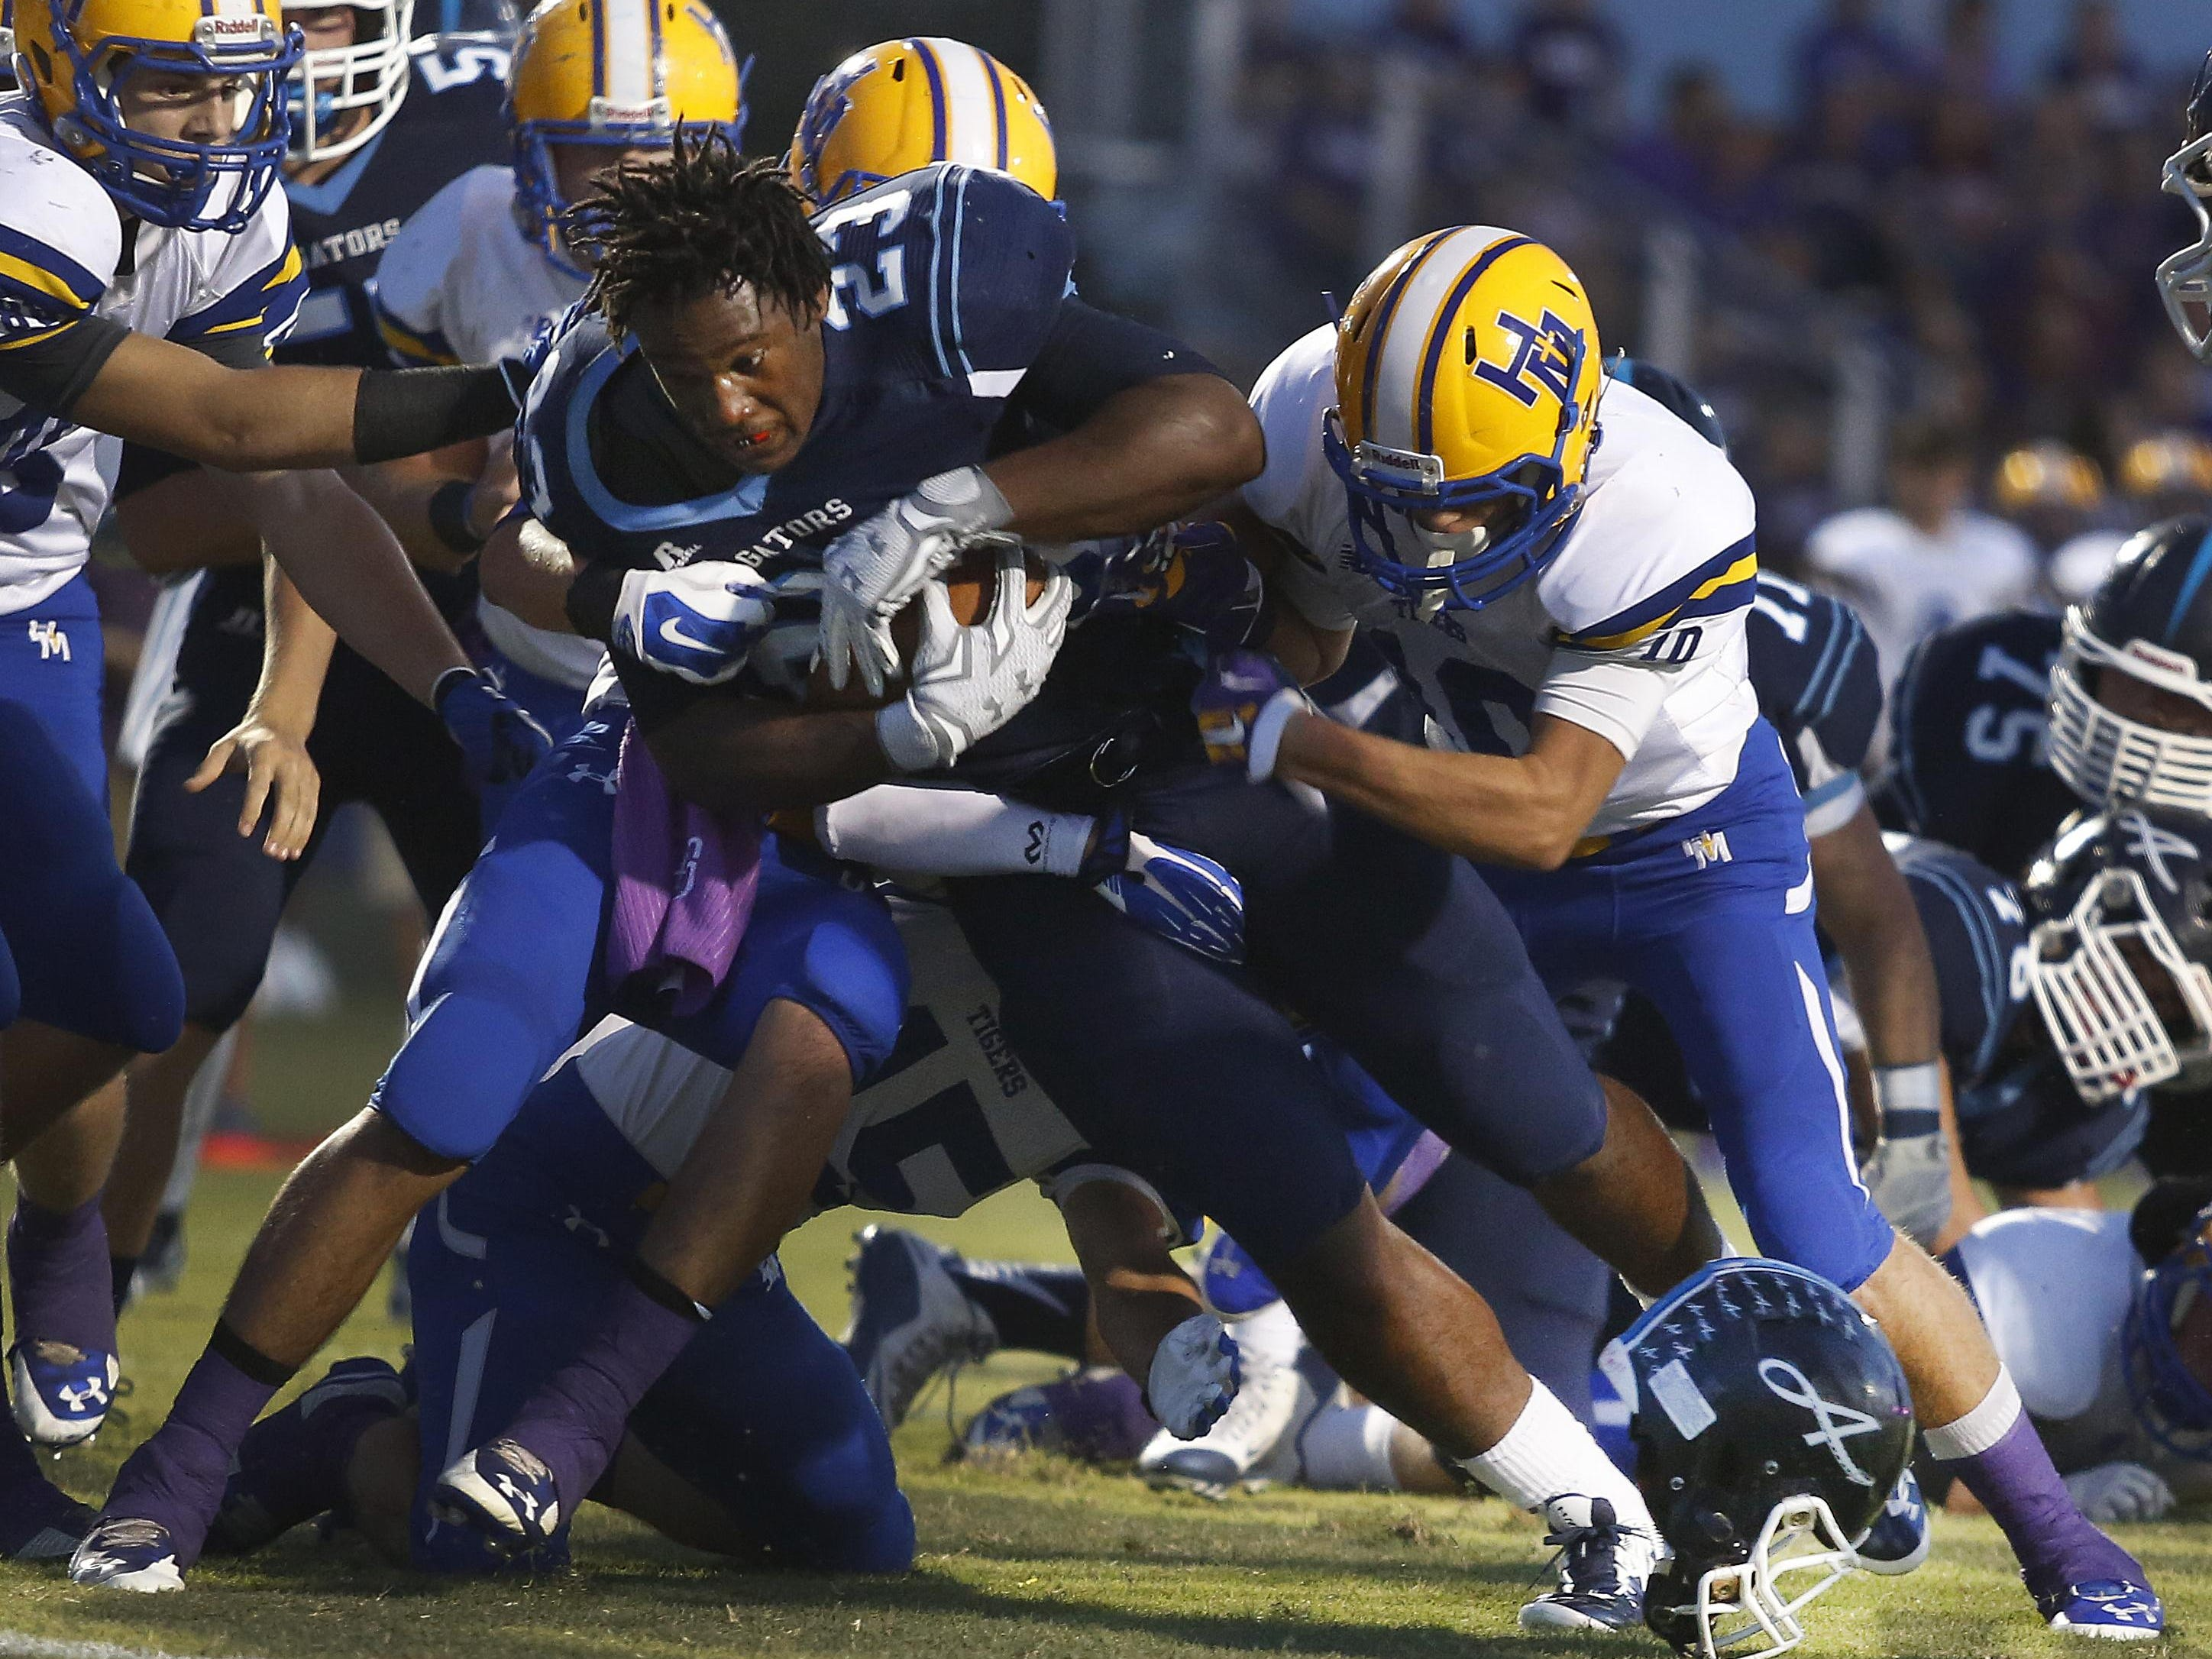 Ascension Episcopal running back Ja'Ceiry Linzer loses his helmet as he drives towards the goal line for the Blue Gators on Friday night.